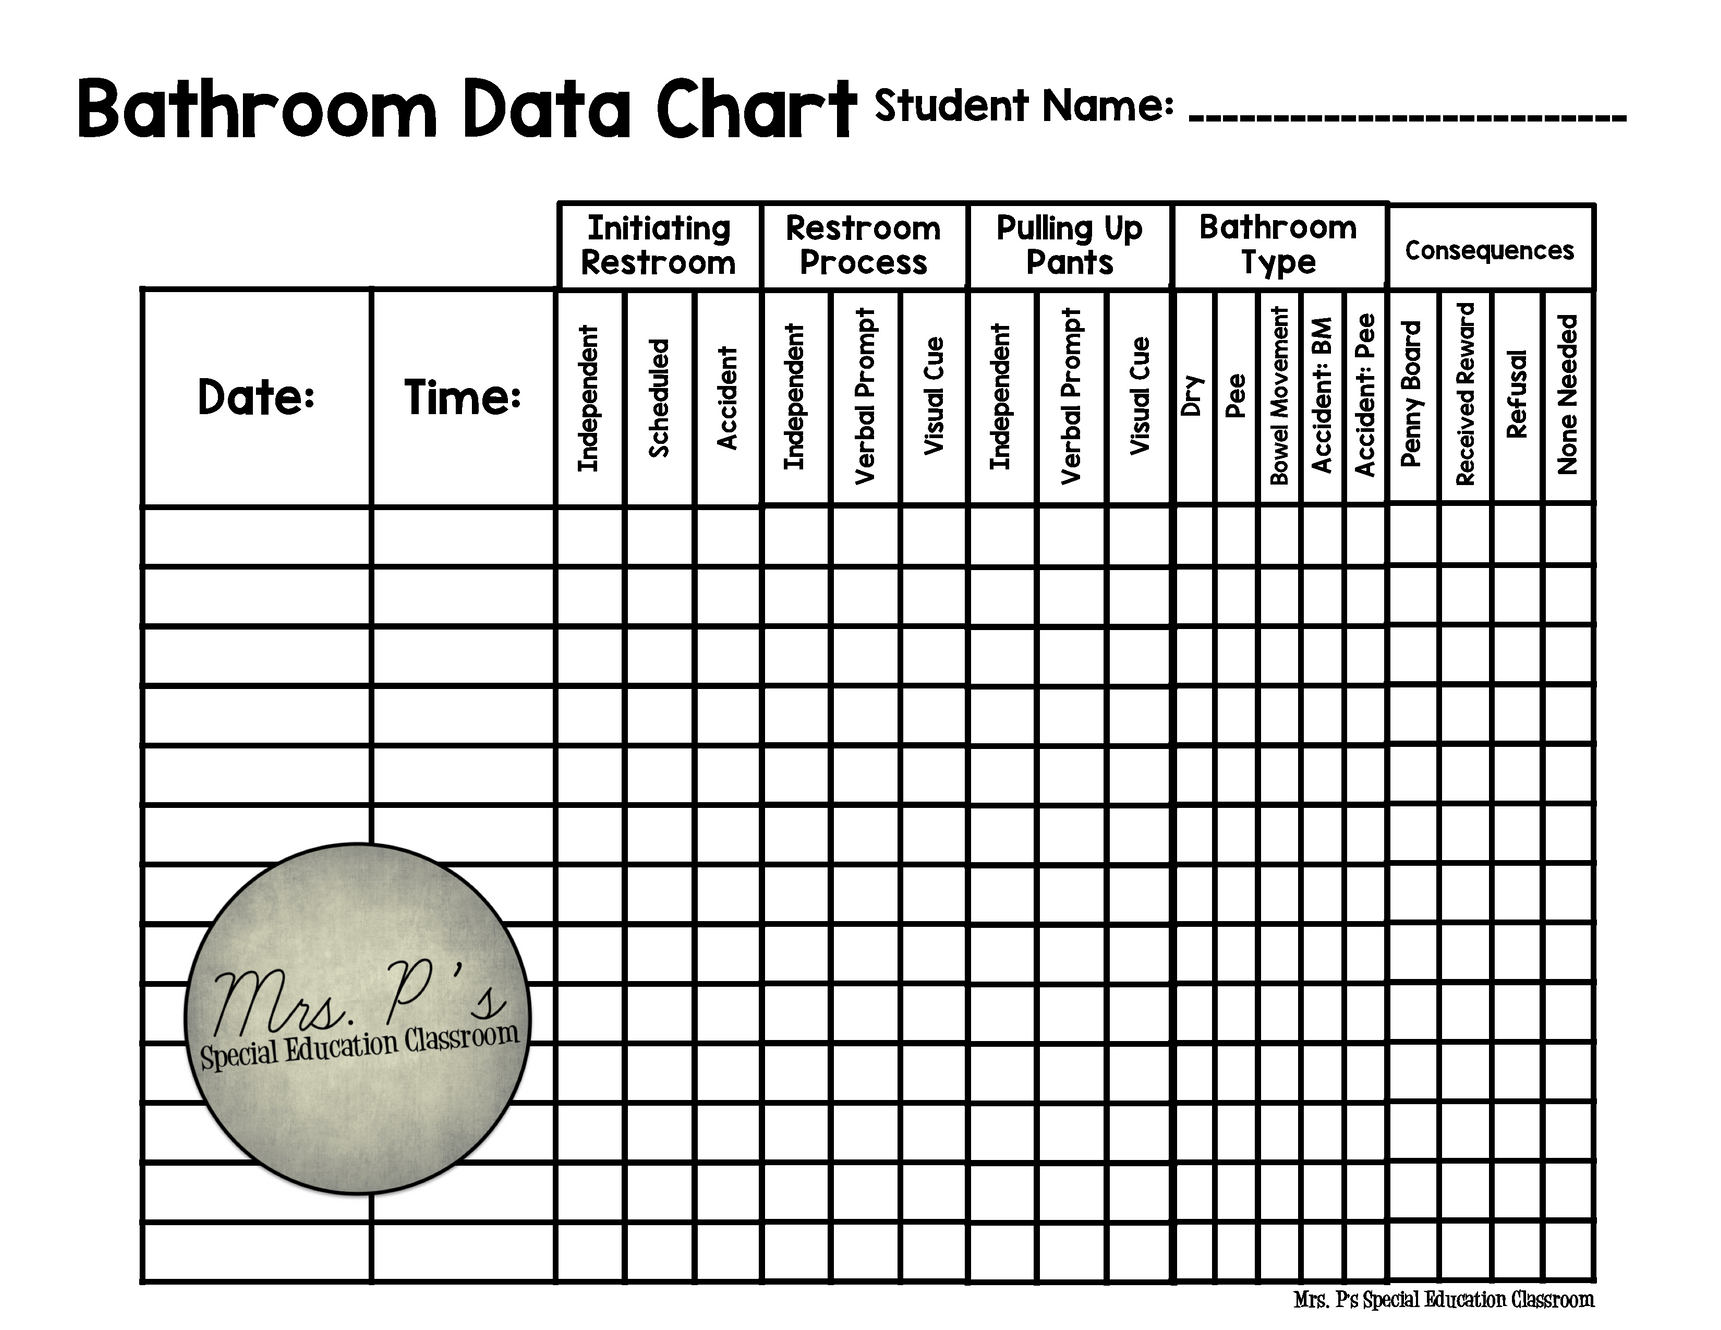 Using Google Forms for Classroom Data Collection